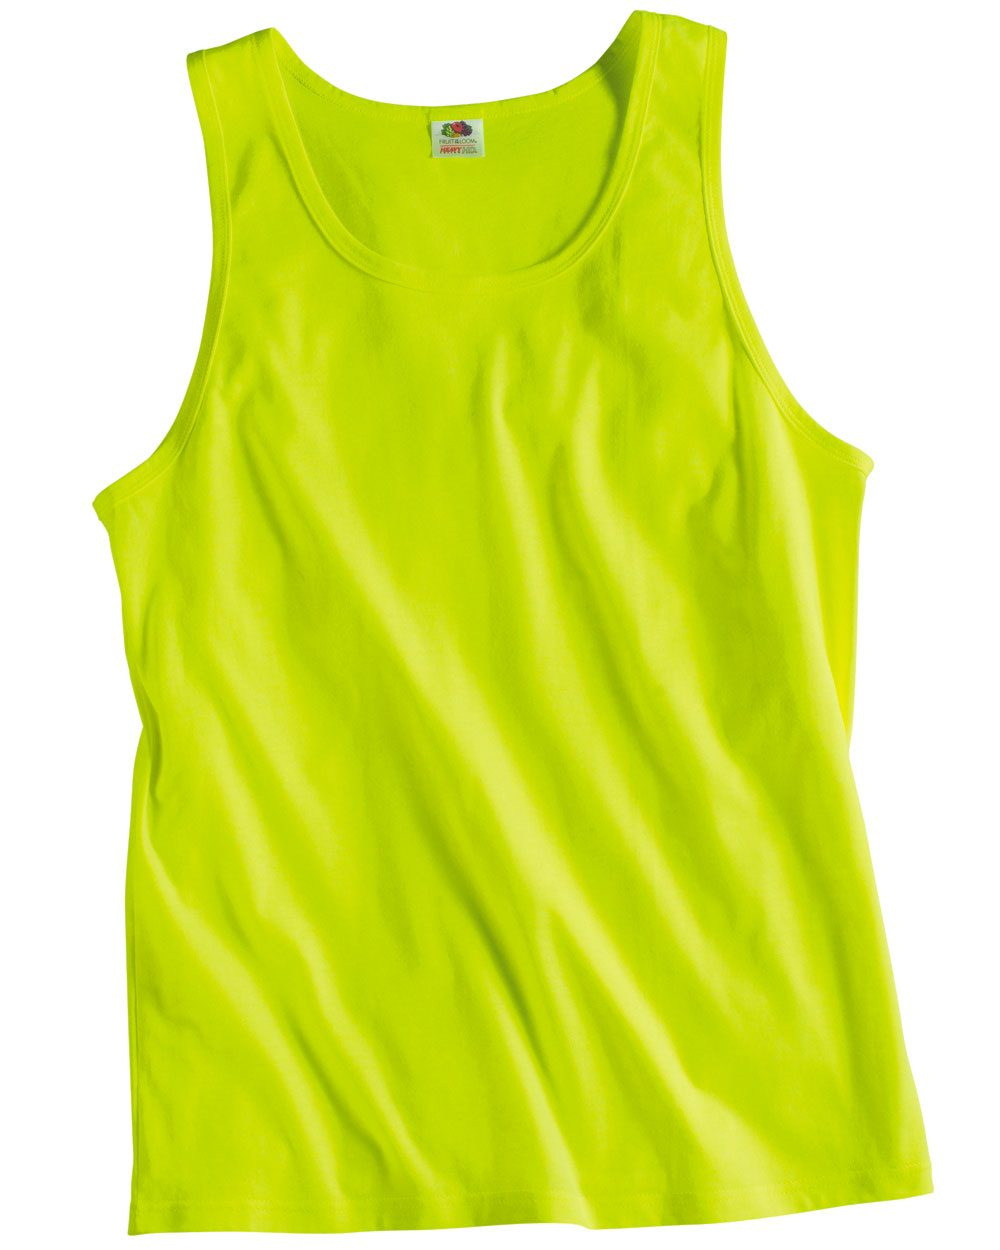 44cee260282c15 Fruit of the Loom Heavy Cotton HD™ 100% Tank Top - 39TKR  4.17 - Men s Tanks